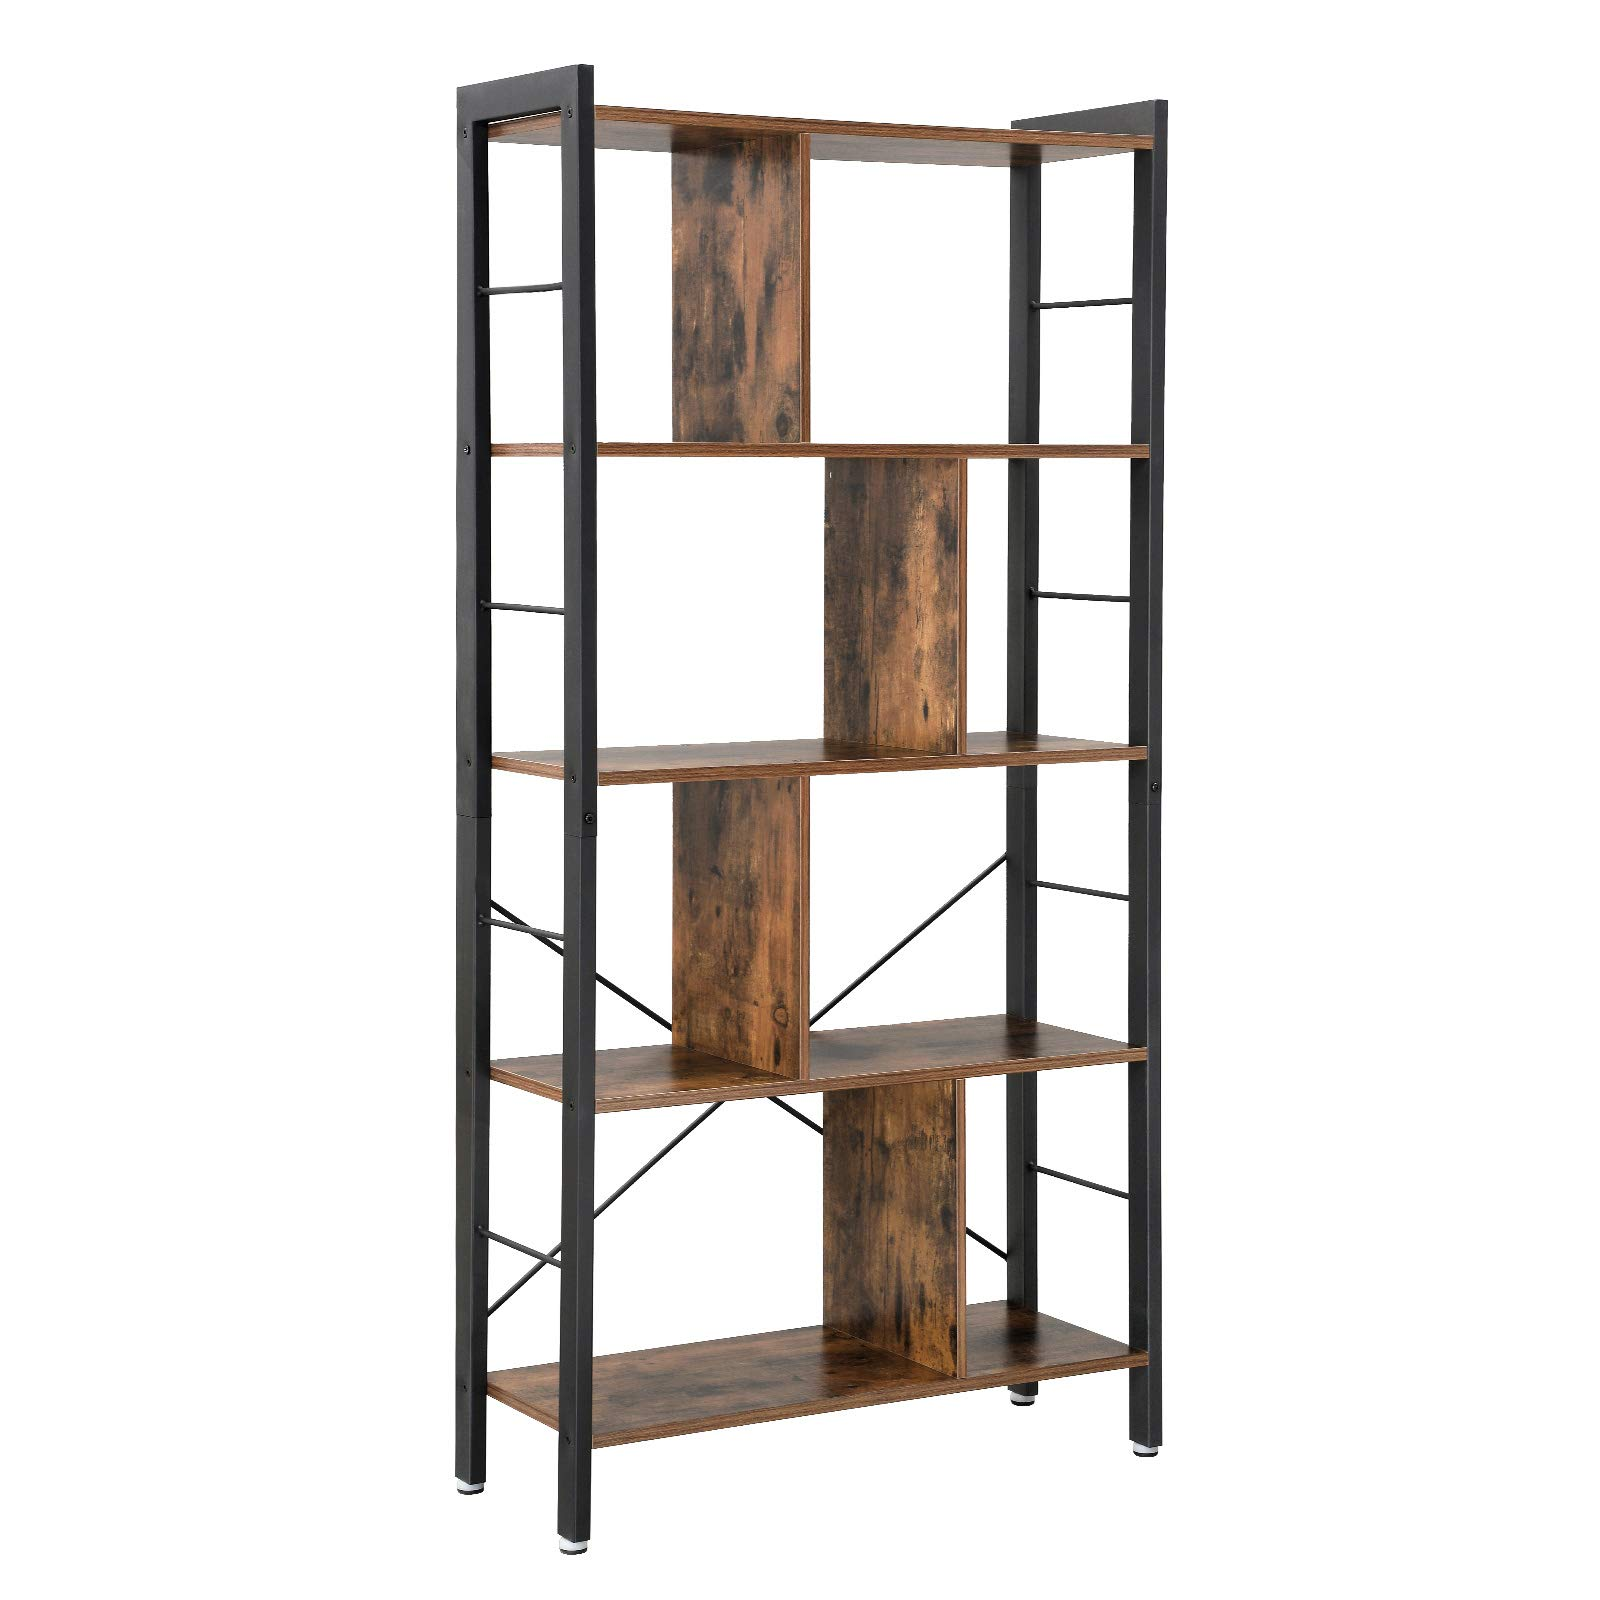 VASAGLE Bookcase, 4 Tier Industrial Bookshelf, Floor Standing Storage Rack in Living Room Office Study, Large Storage Space, Simple Assembly, Stable Iron Frame, Rustic ULBC12BX by VASAGLE